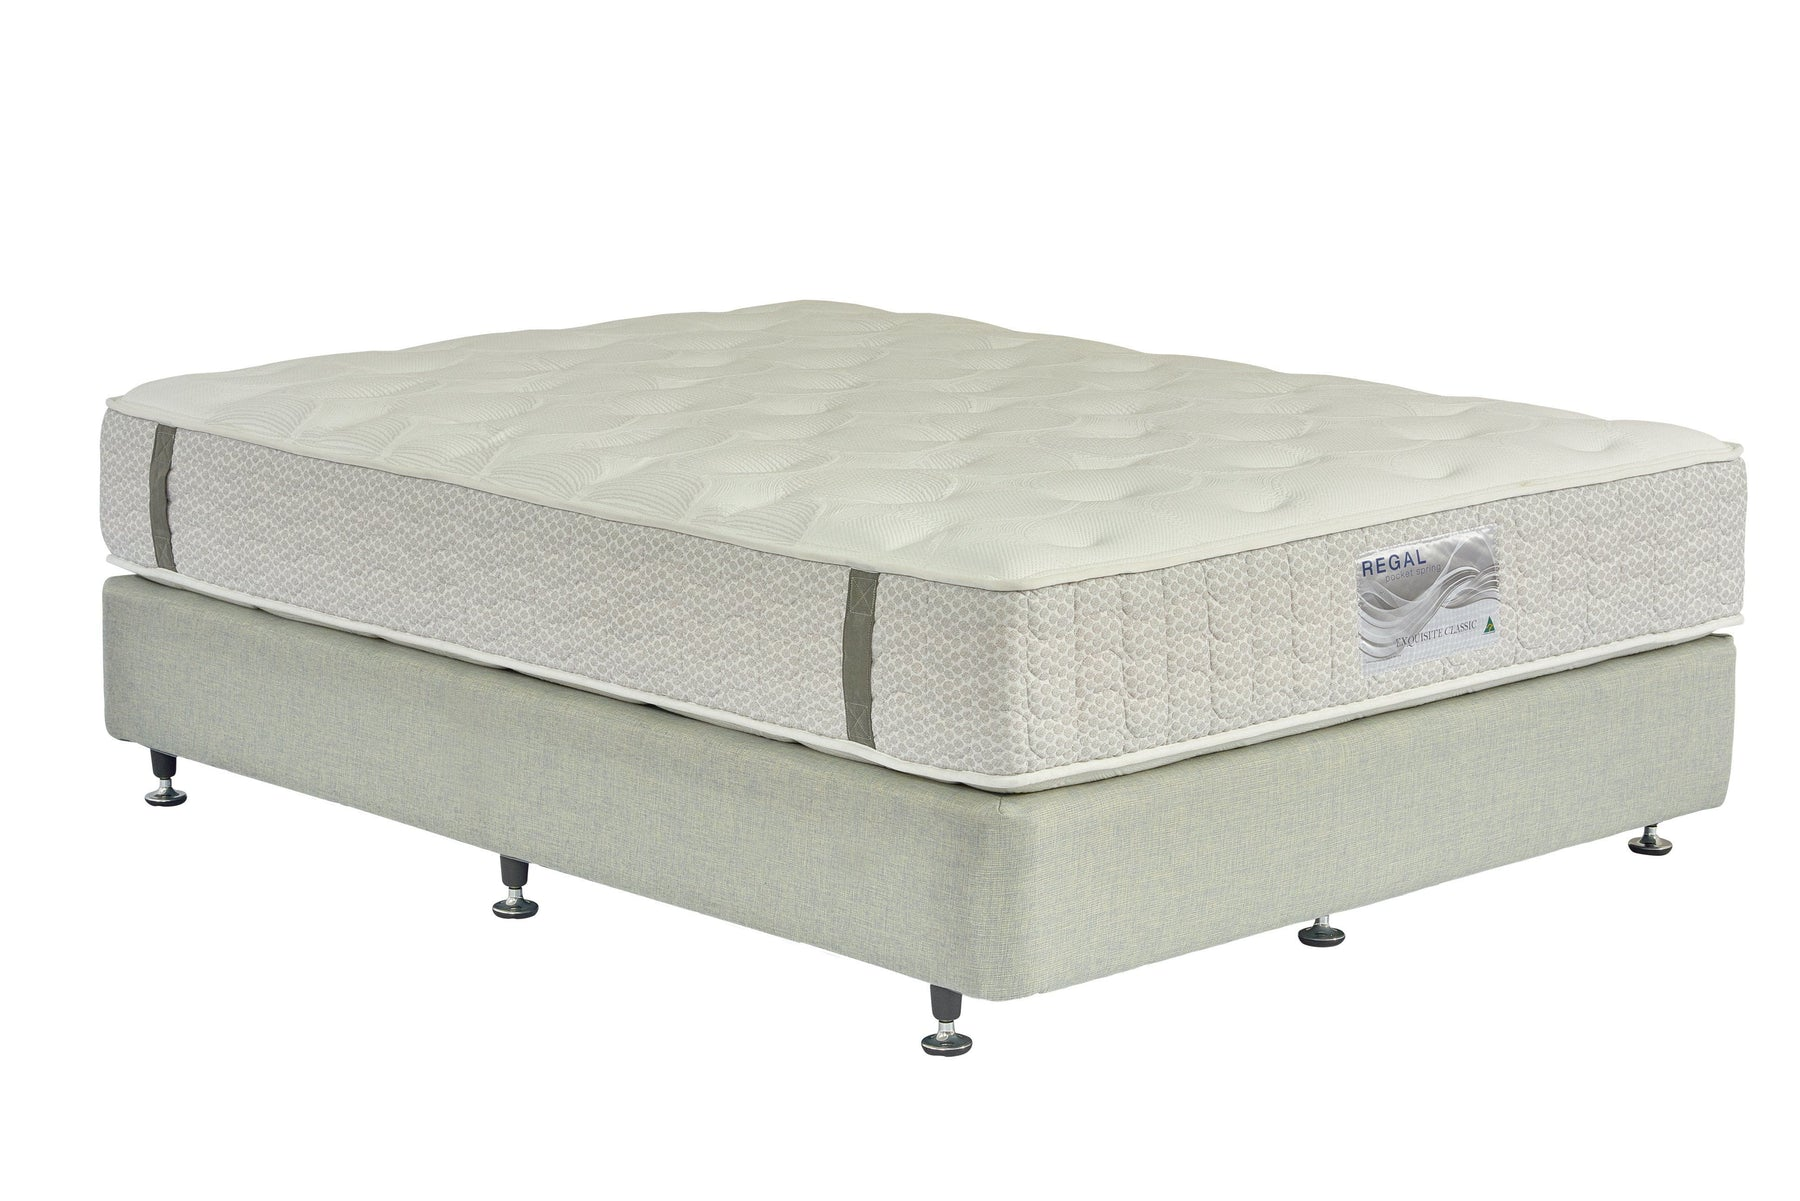 Exquisite Classic Mattress